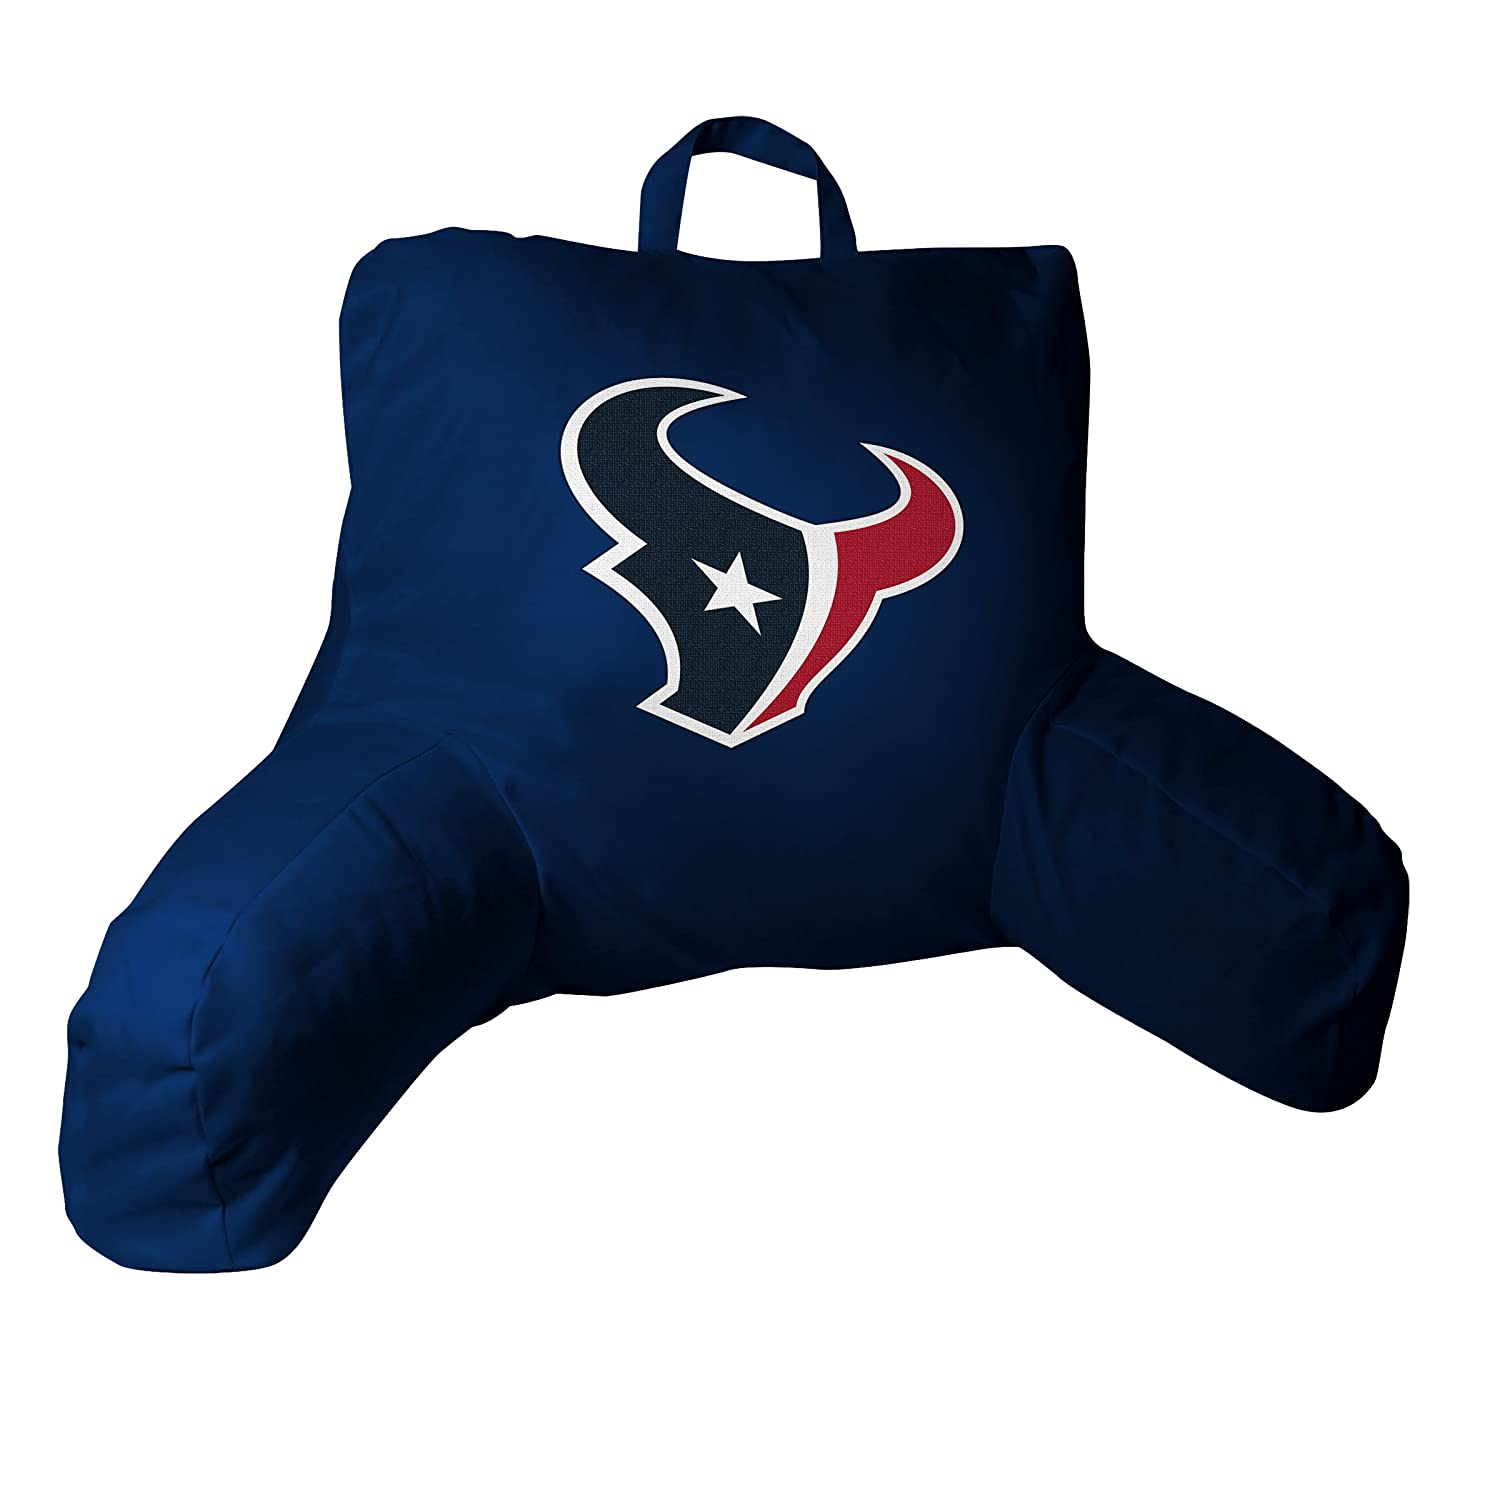 Texans OFFICIAL NFL Bed Rest Pillow